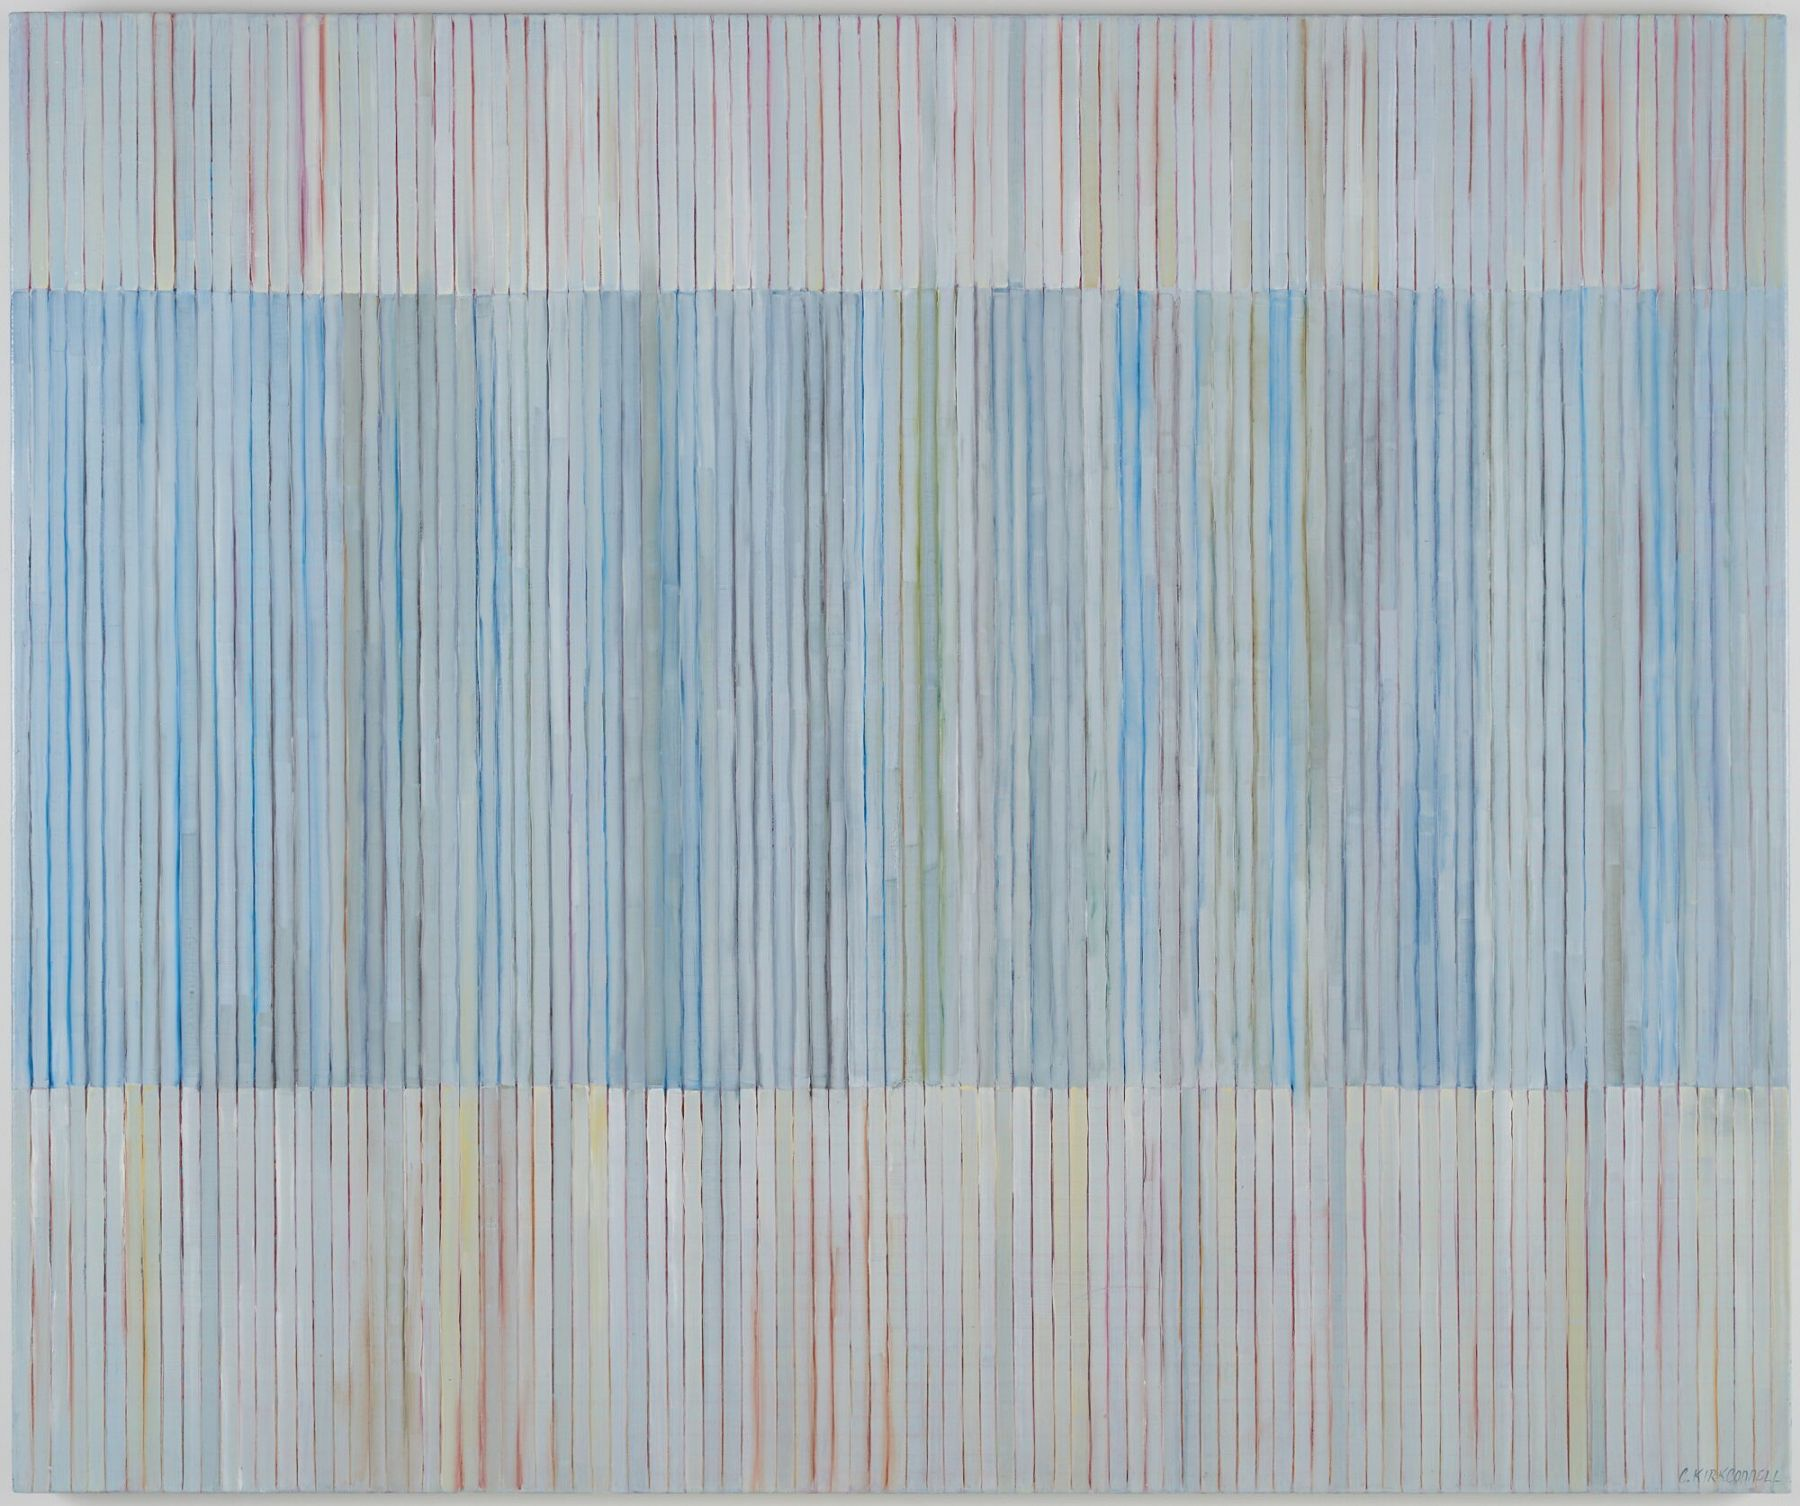 Clare Kirkconnell Strip Bars II, 2018